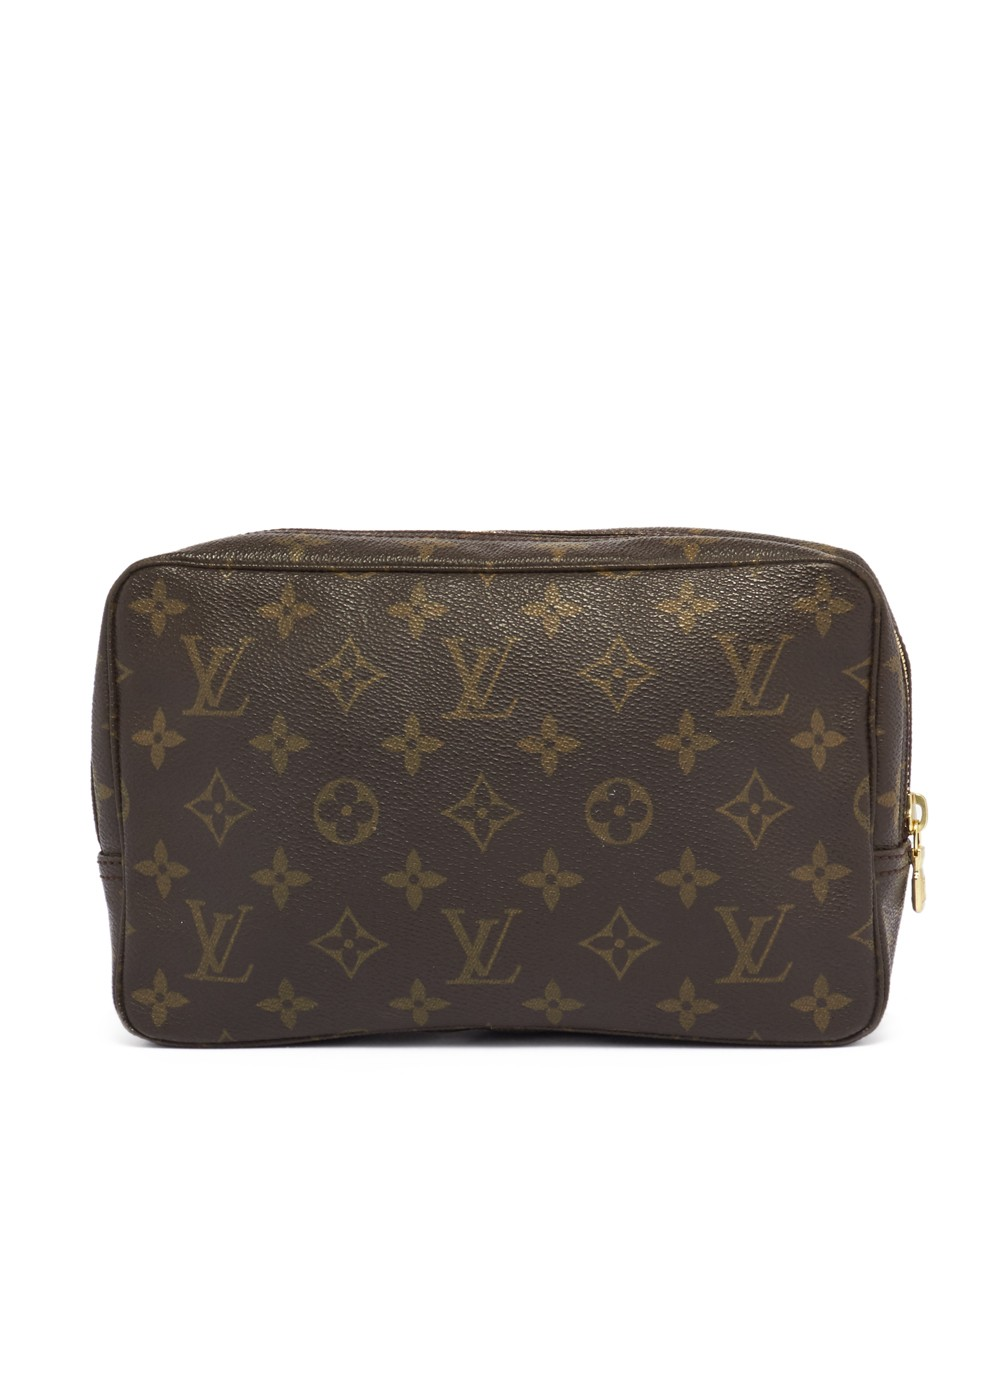 Louis Vuitton M47524 トゥルーストワレット23 |OTHER|ポーチ|VINTAGE BRAND COLLECTION_(I)